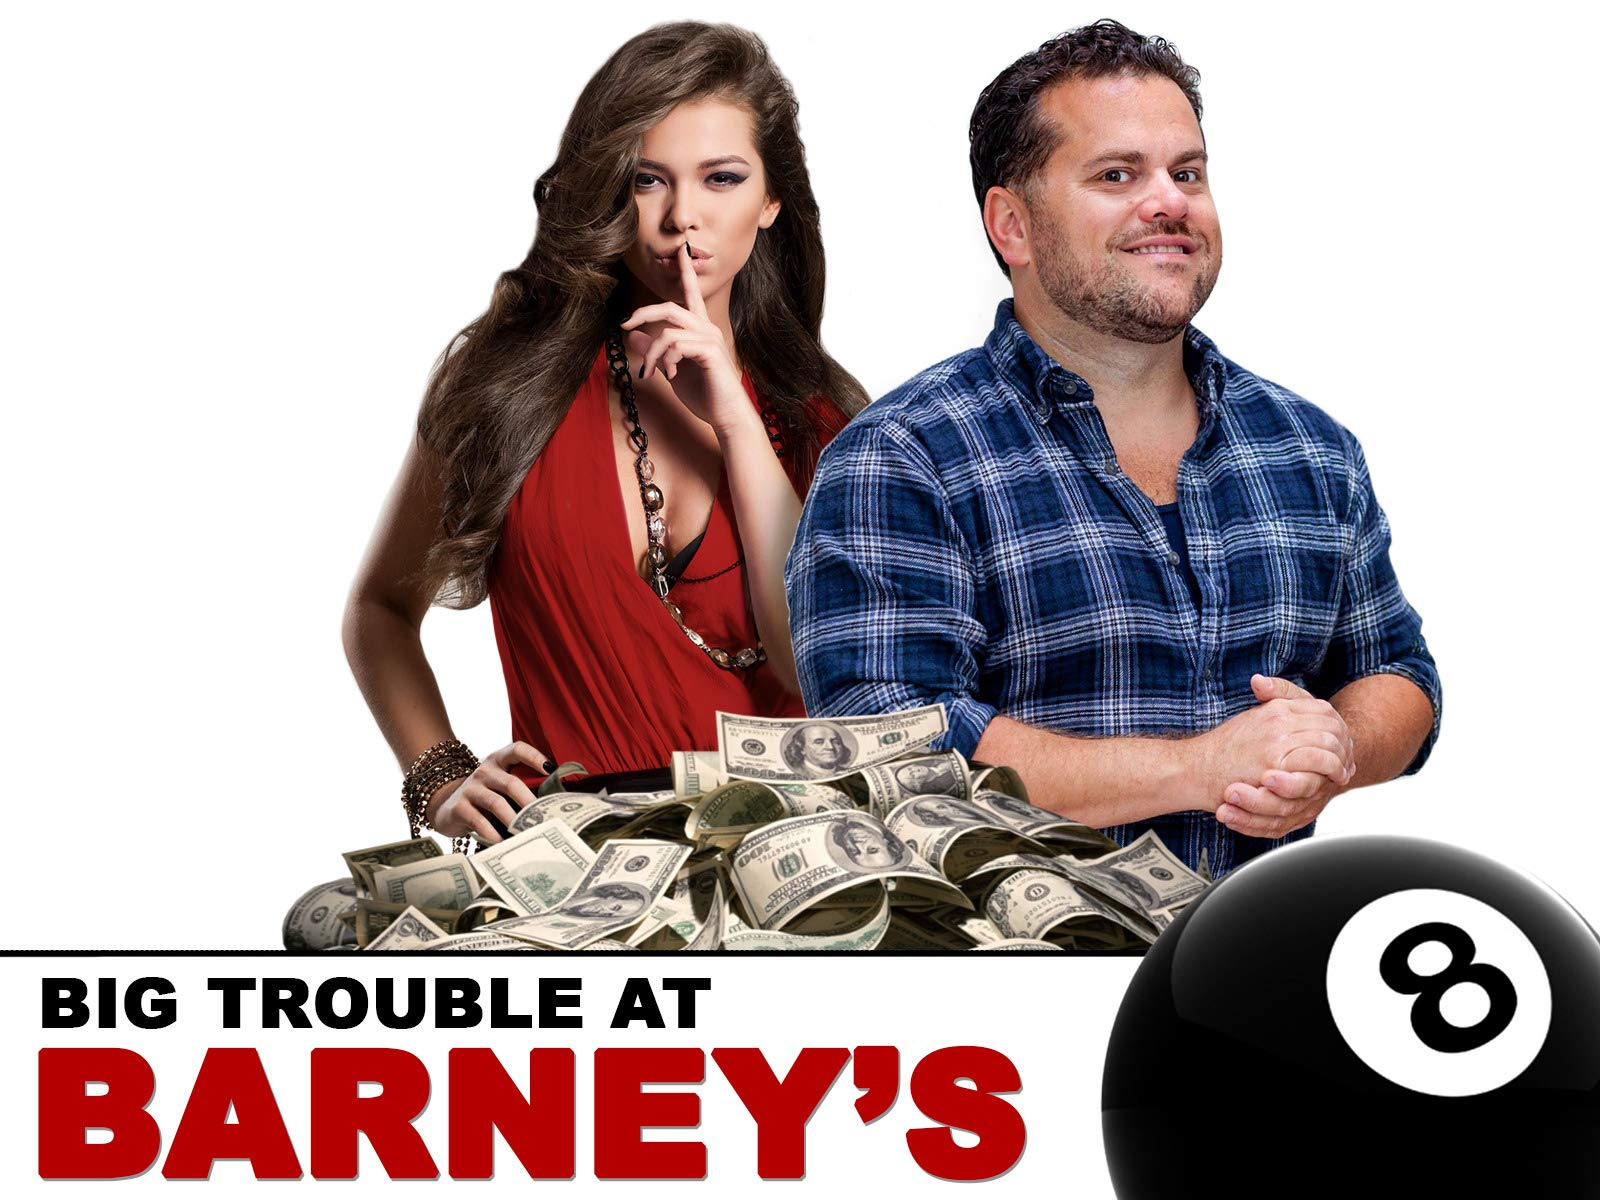 Big Trouble at Barney's